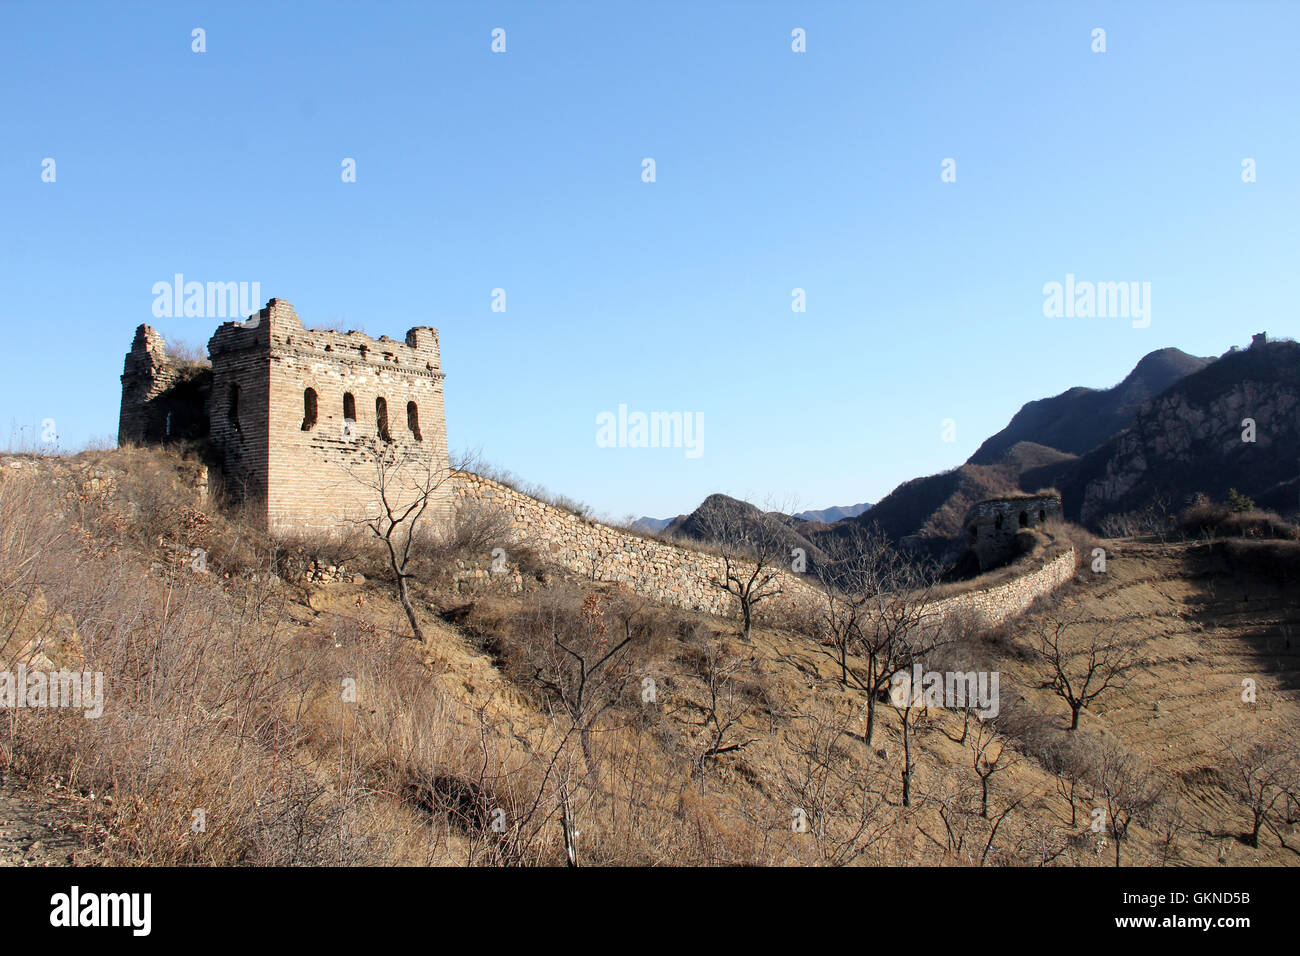 Hebei province Tangshan Qianxi elm ridge of the Great Wall,China - Stock Image